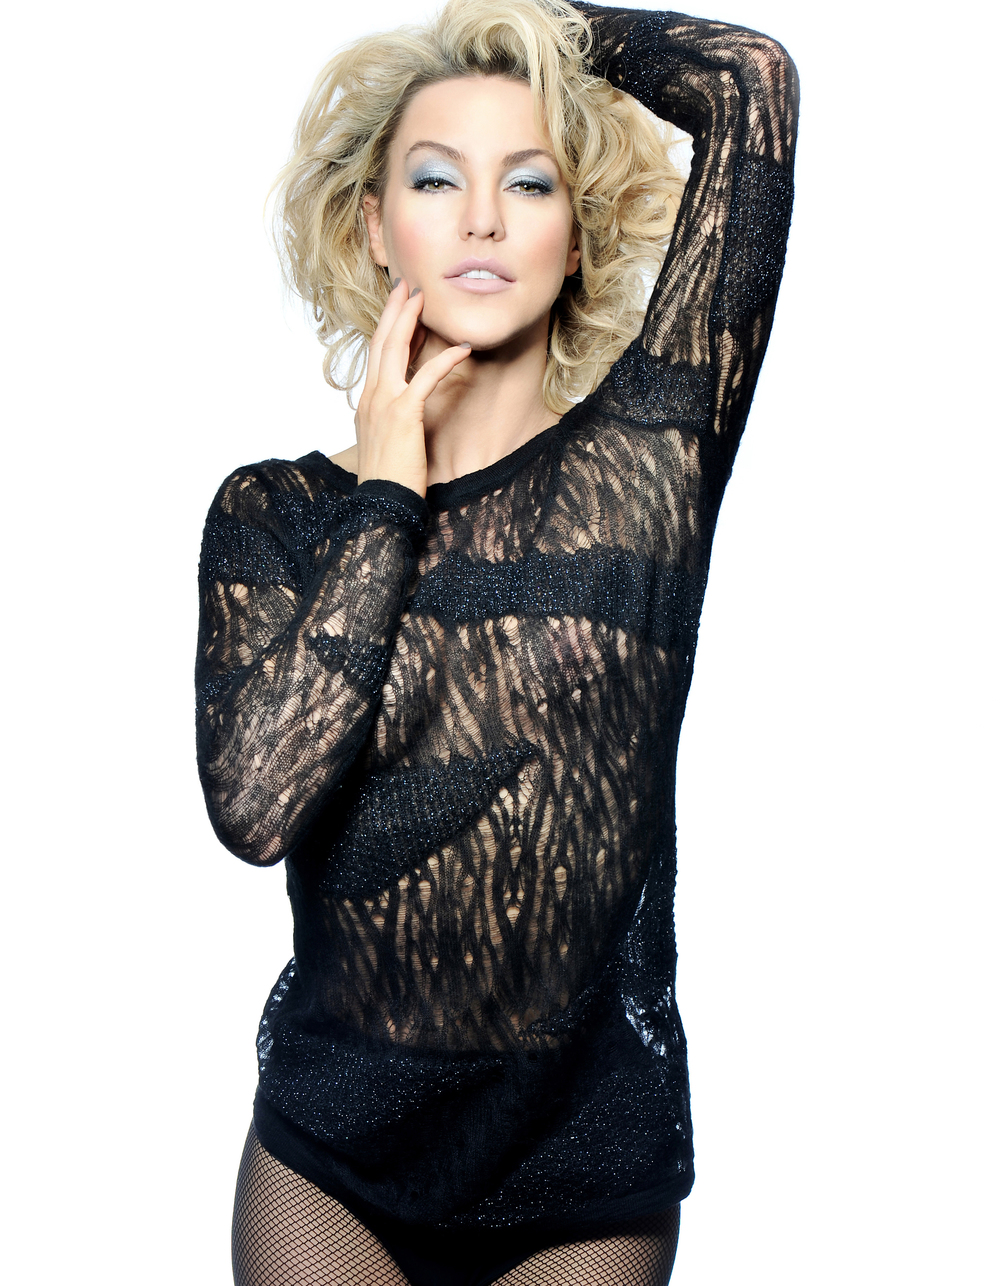 NATALIE LOWE | STRICTLY COME DANCING